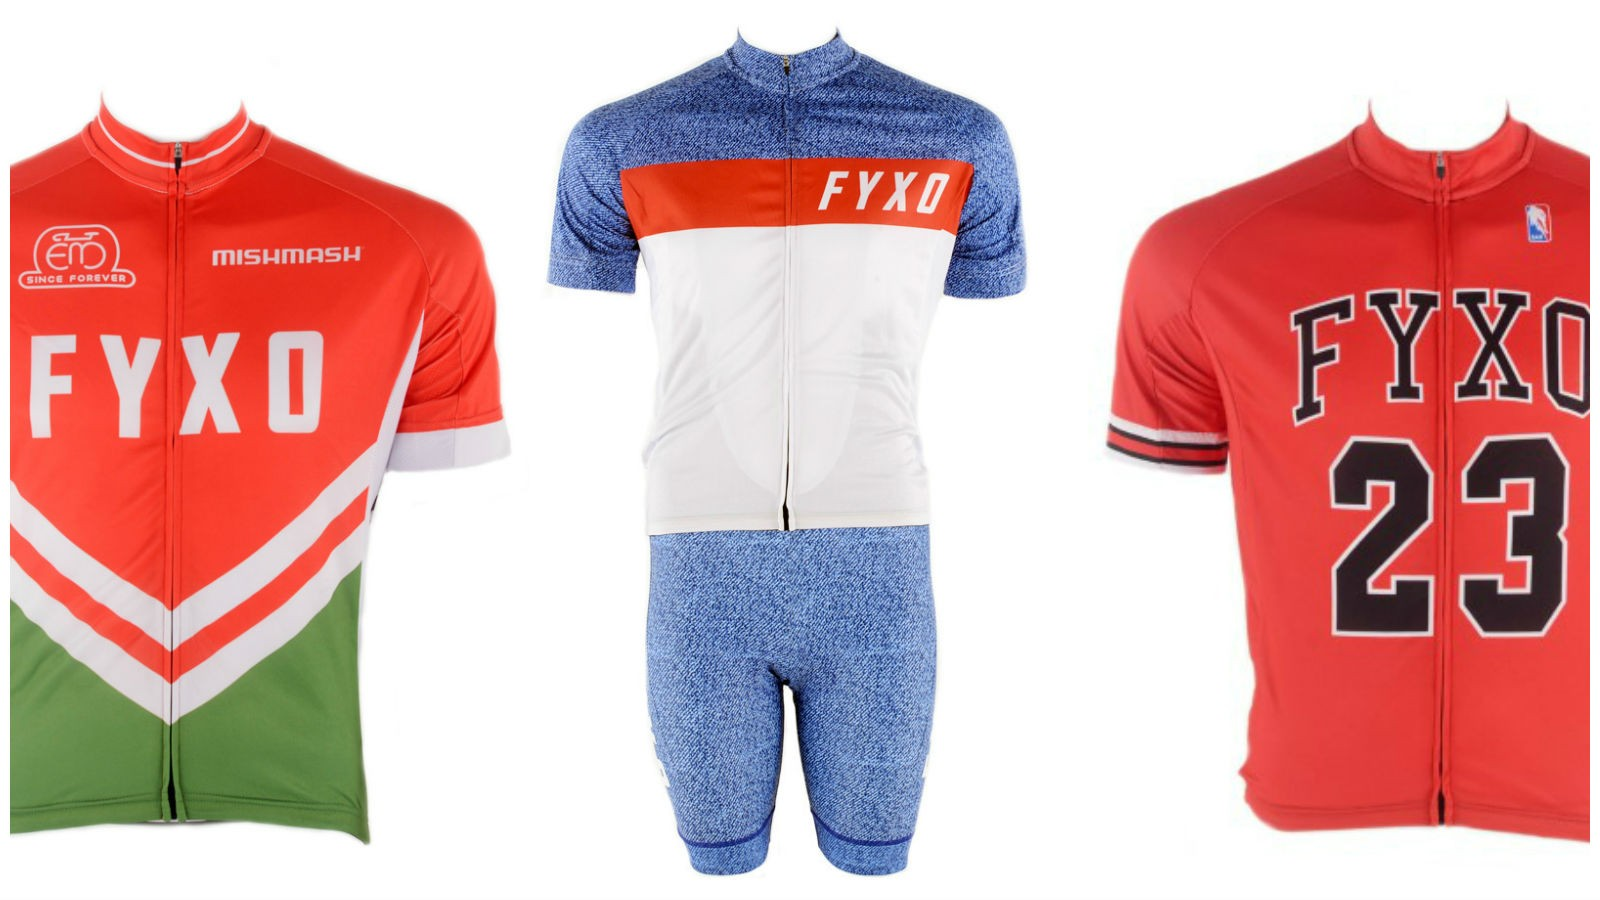 All of Fyxo's cycling kits have that classic styling